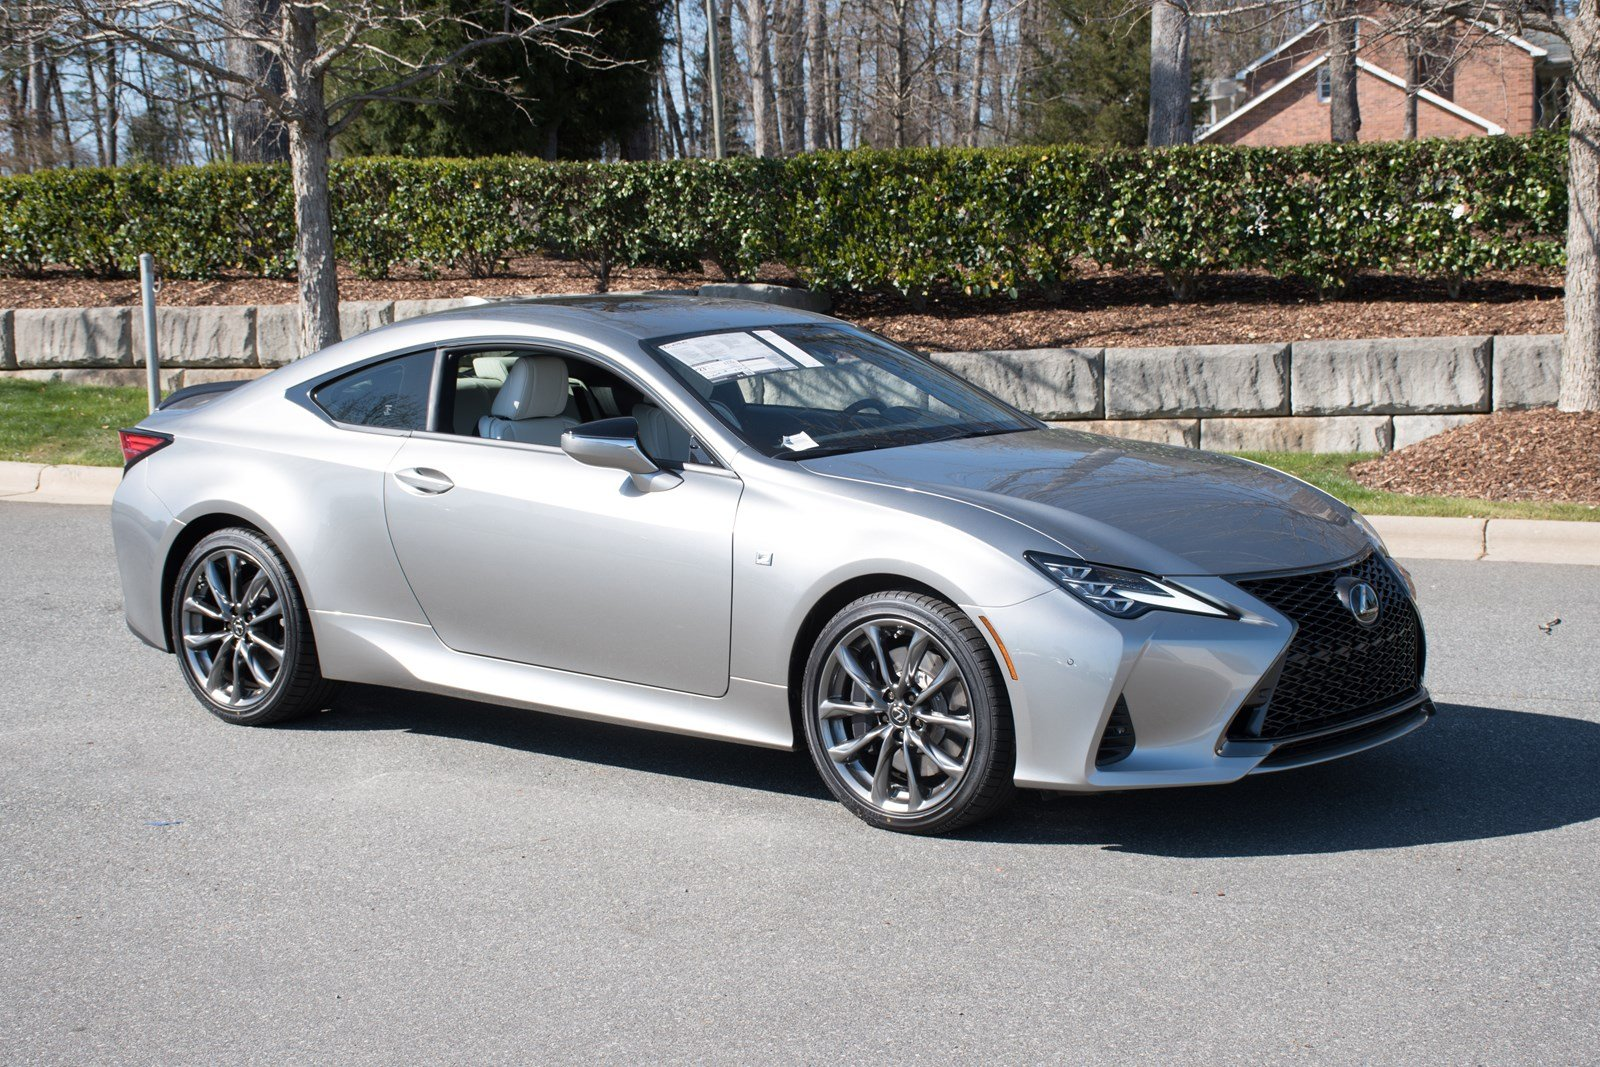 Lexus Rc 350 For Sale >> New 2019 Lexus Rc 350 For Sale In Charlotte Vin Jthhz5bc7k5020070